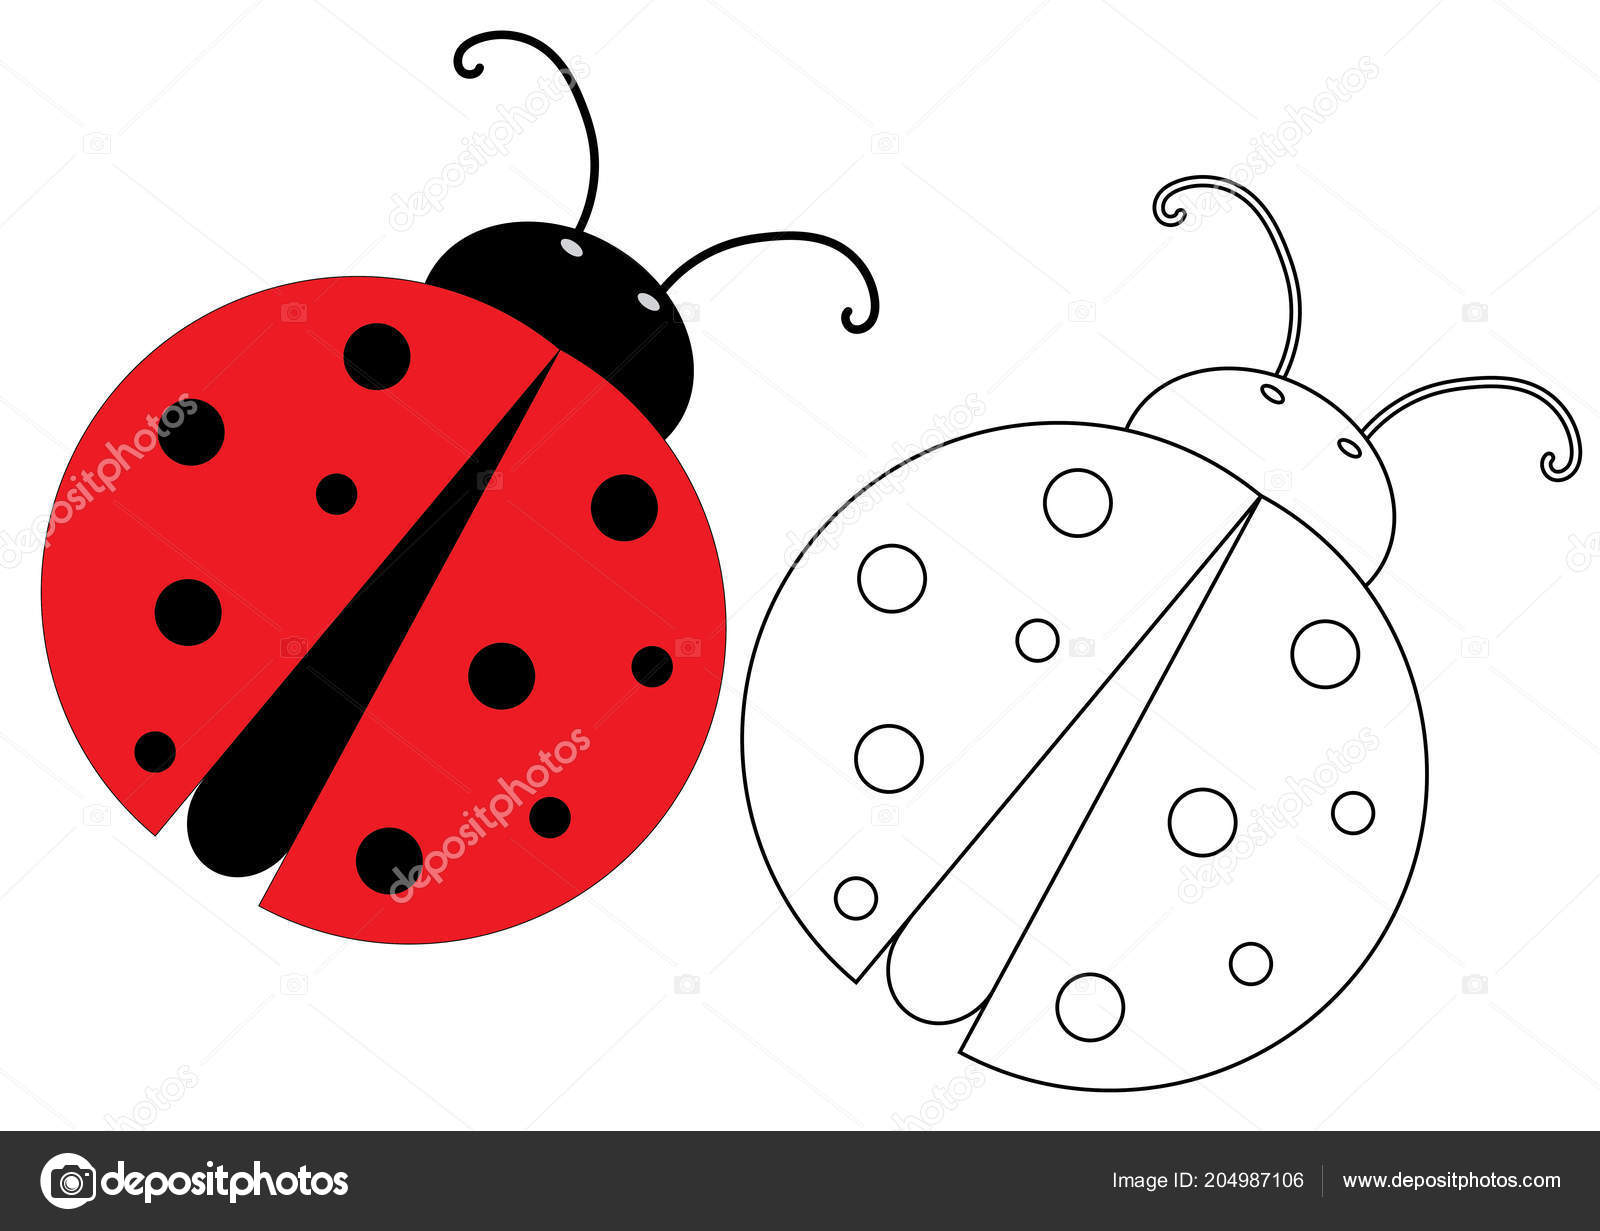 Ladybug Coloring Page Game Kids Vector Illustration Stock Vector